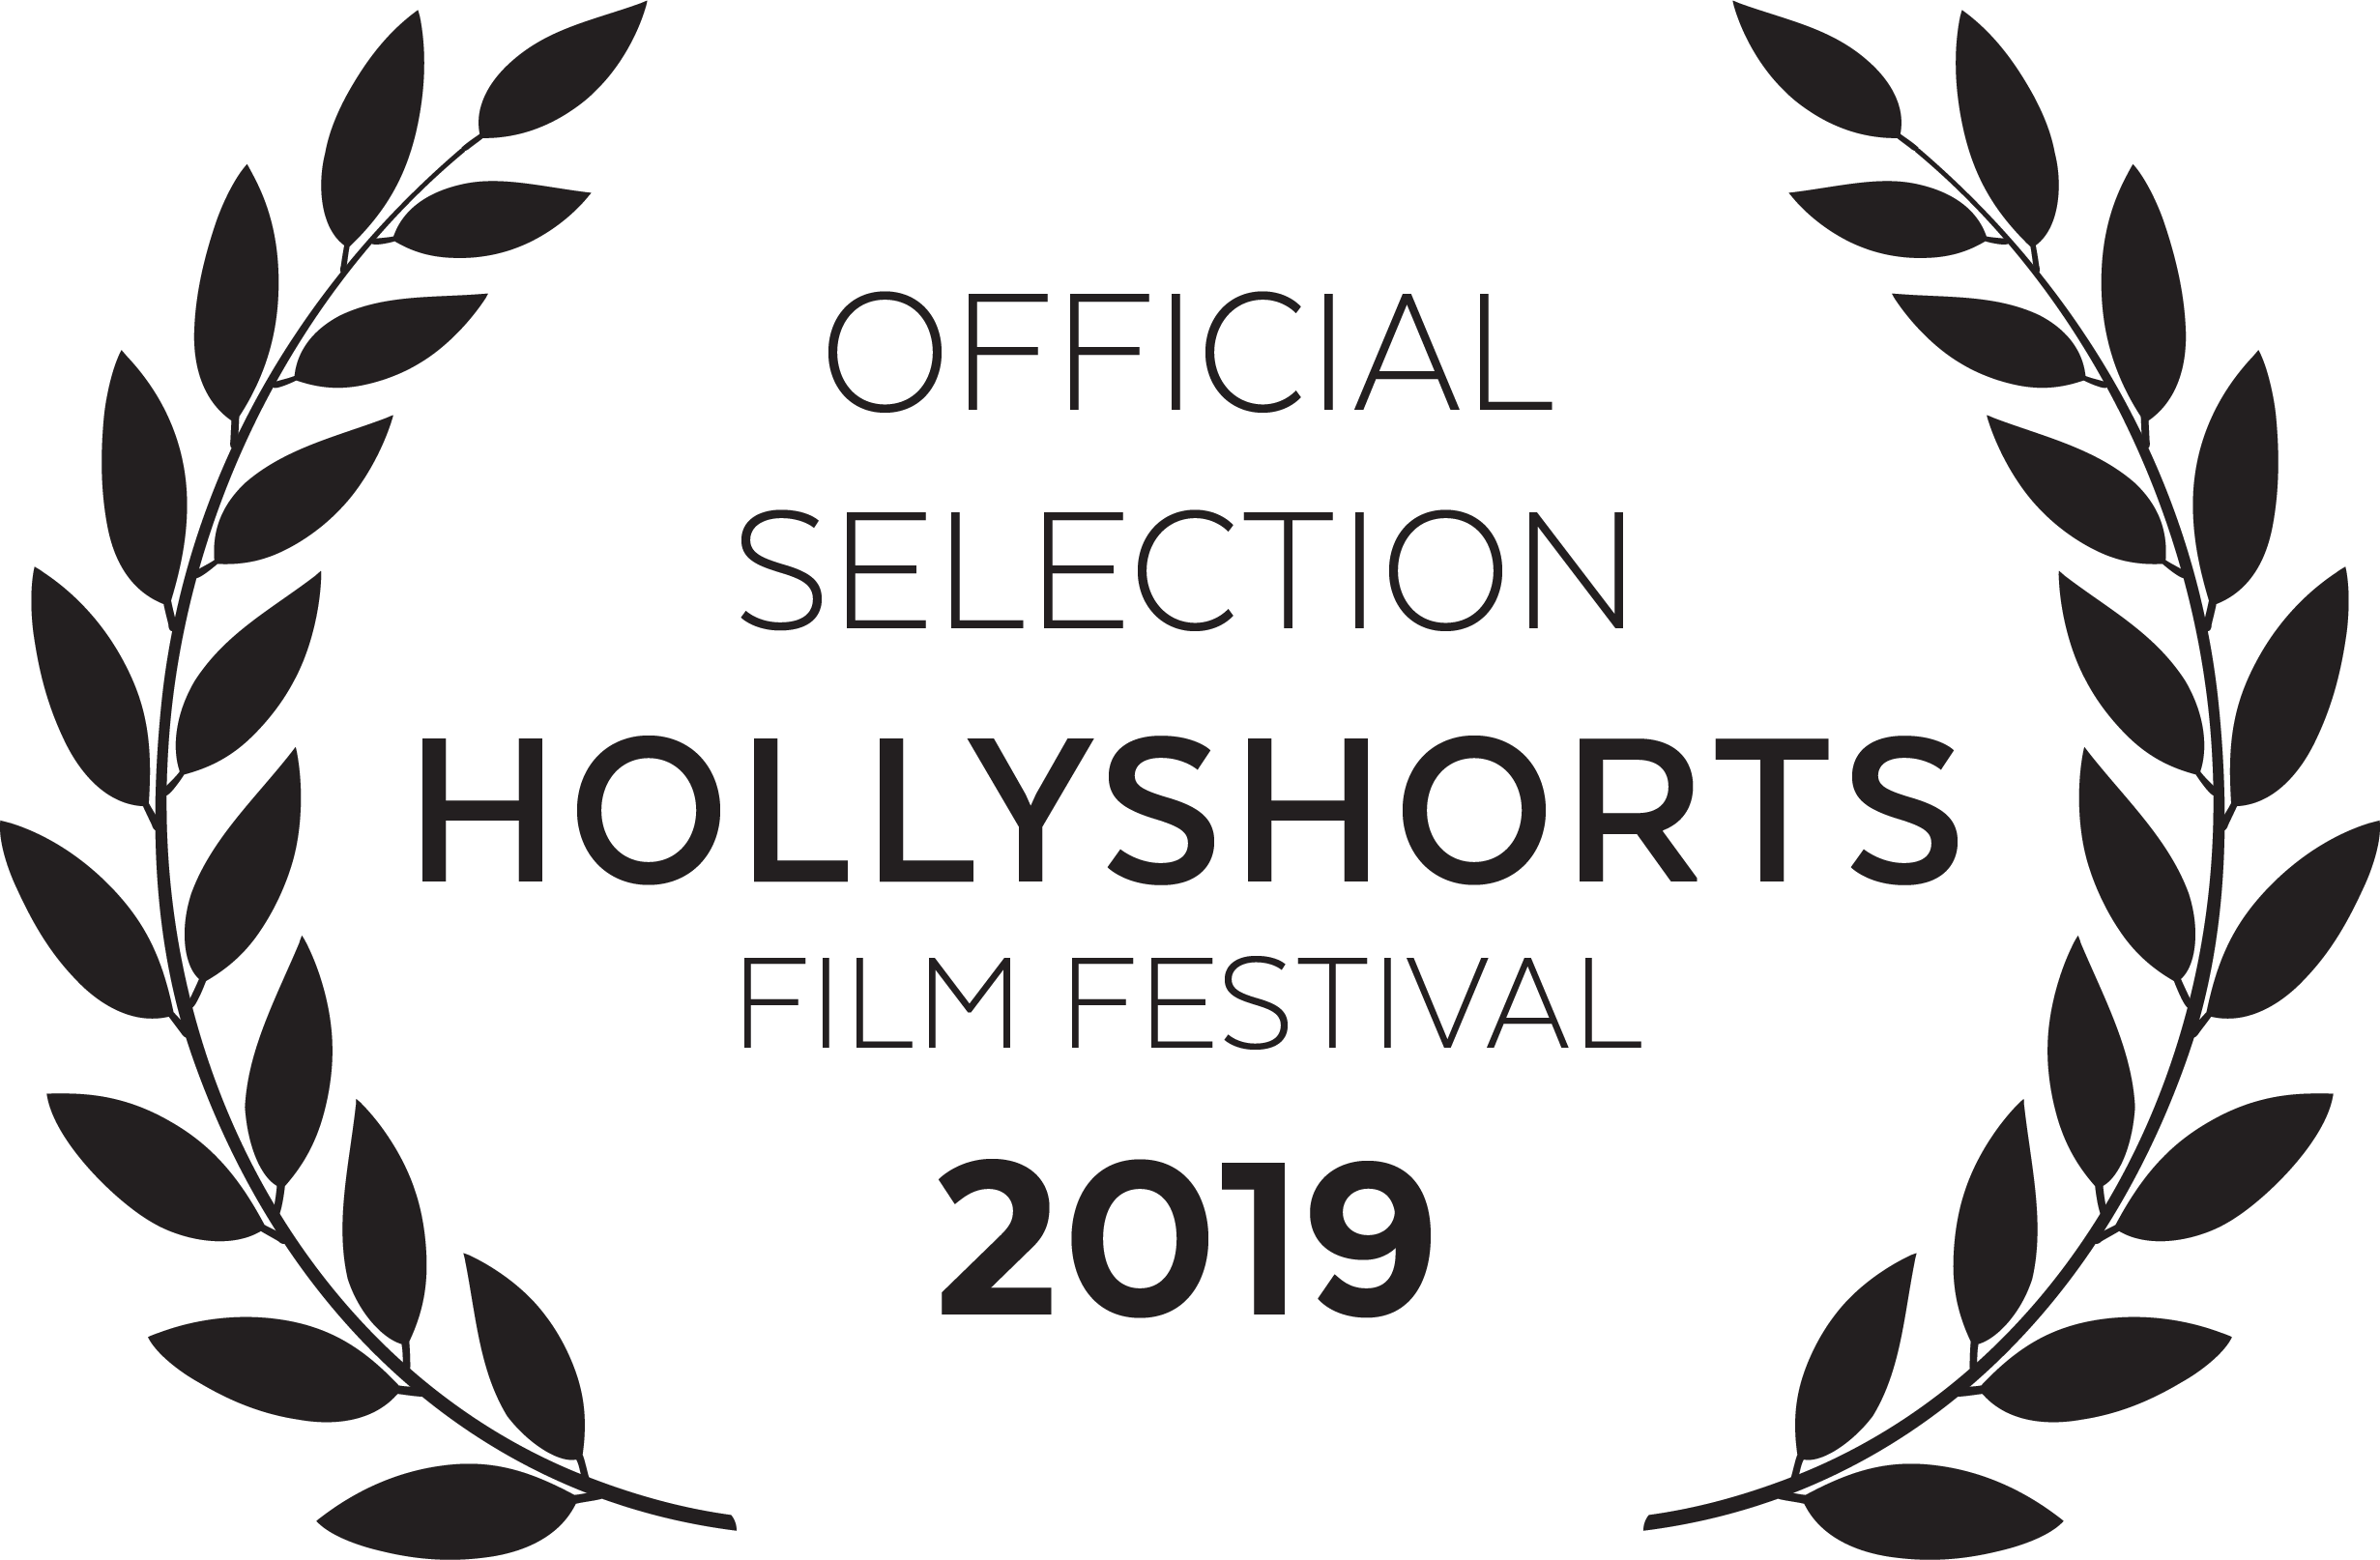 Hollyshorts(black).png